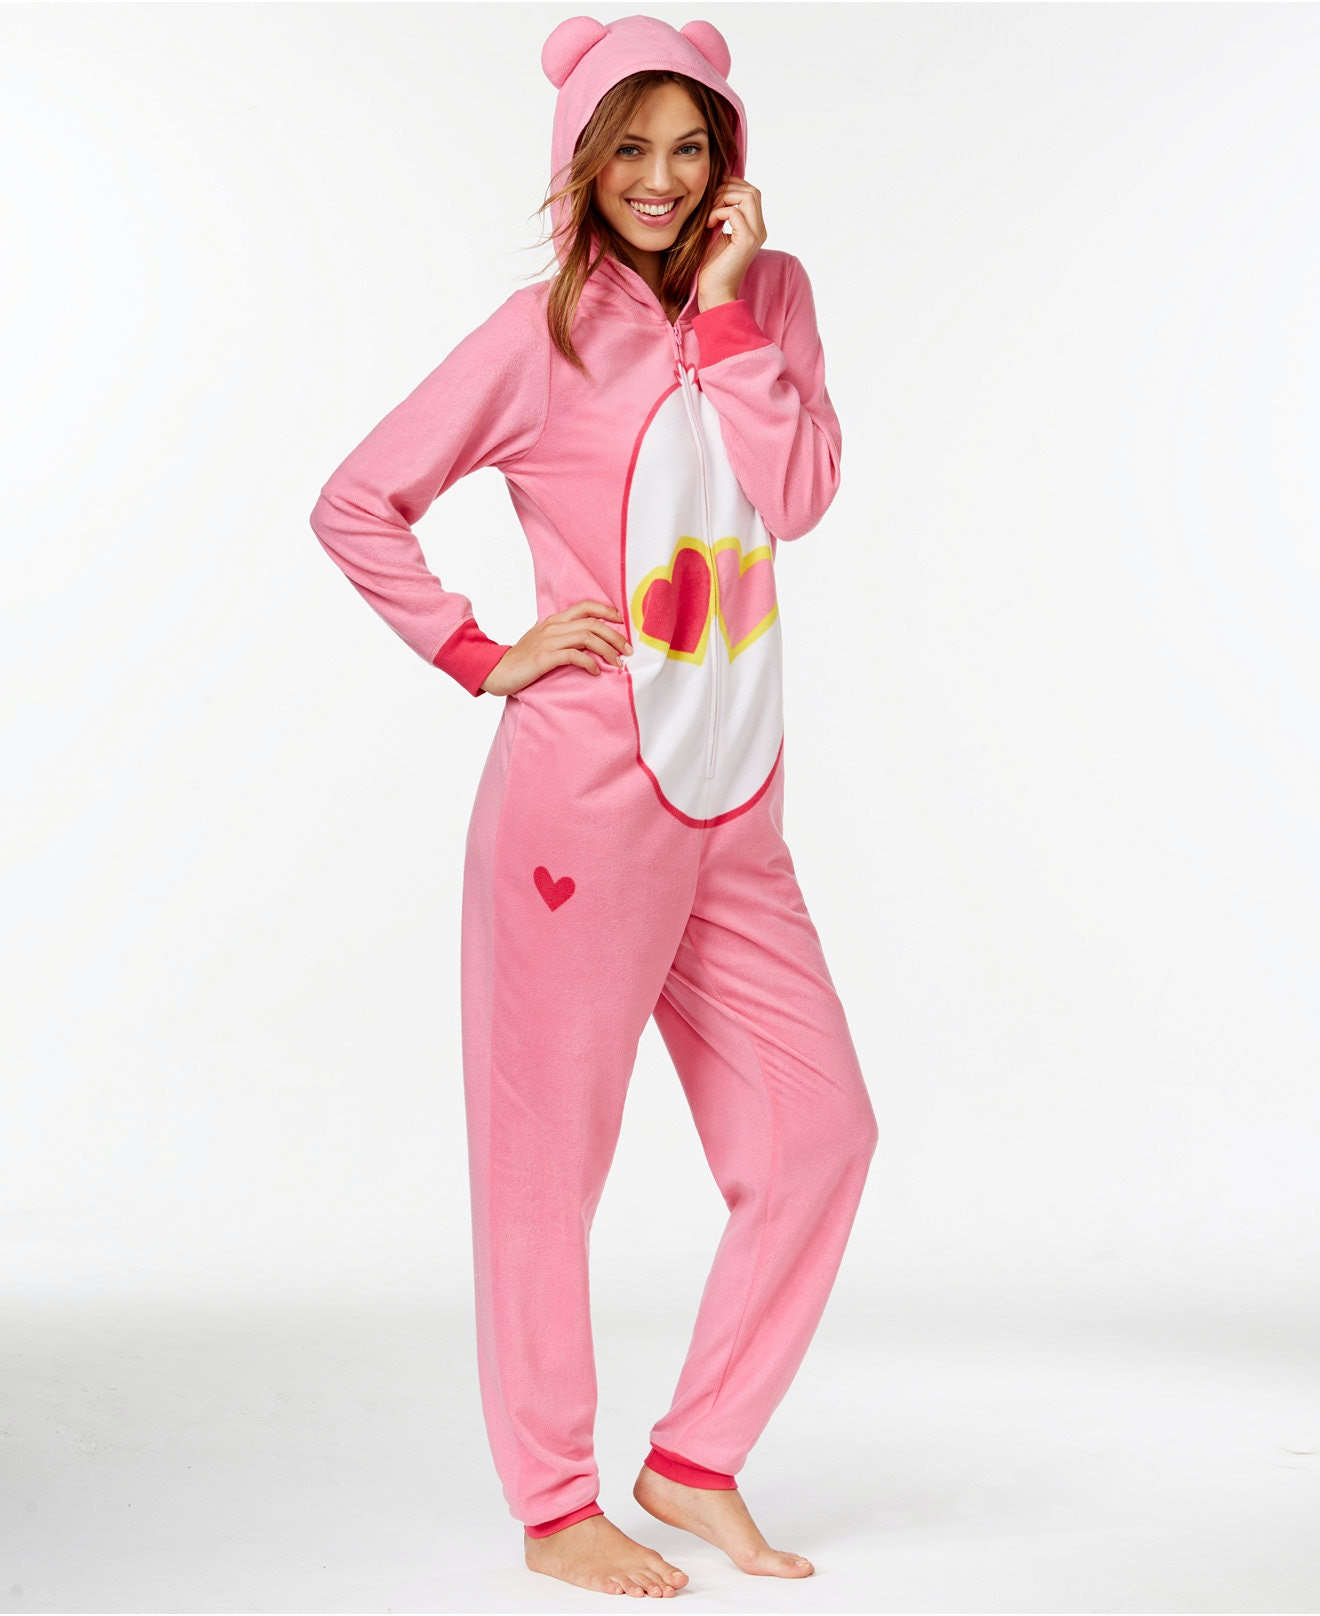 13 Onesie Halloween Costumes For The Lazy Girl Who Wants To Stay Warm u2014 PHOTOS  sc 1 st  Bustle & 13 Onesie Halloween Costumes For The Lazy Girl Who Wants To Stay ...